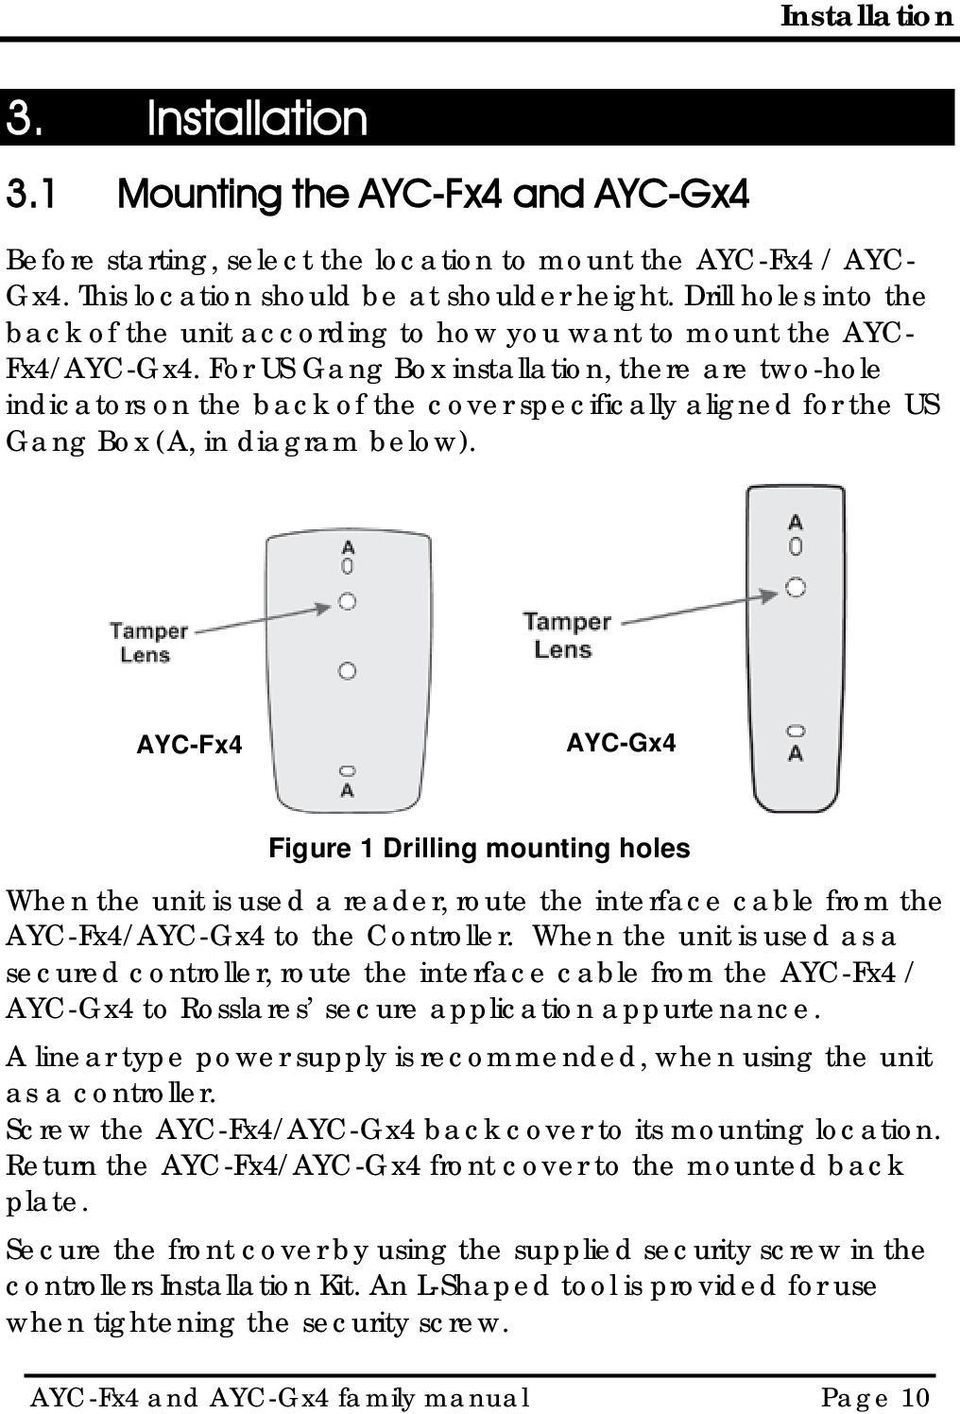 For US Gang Box installation, there are two-hole indicators on the back of the cover specifically aligned for the US Gang Box (A, in diagram below).